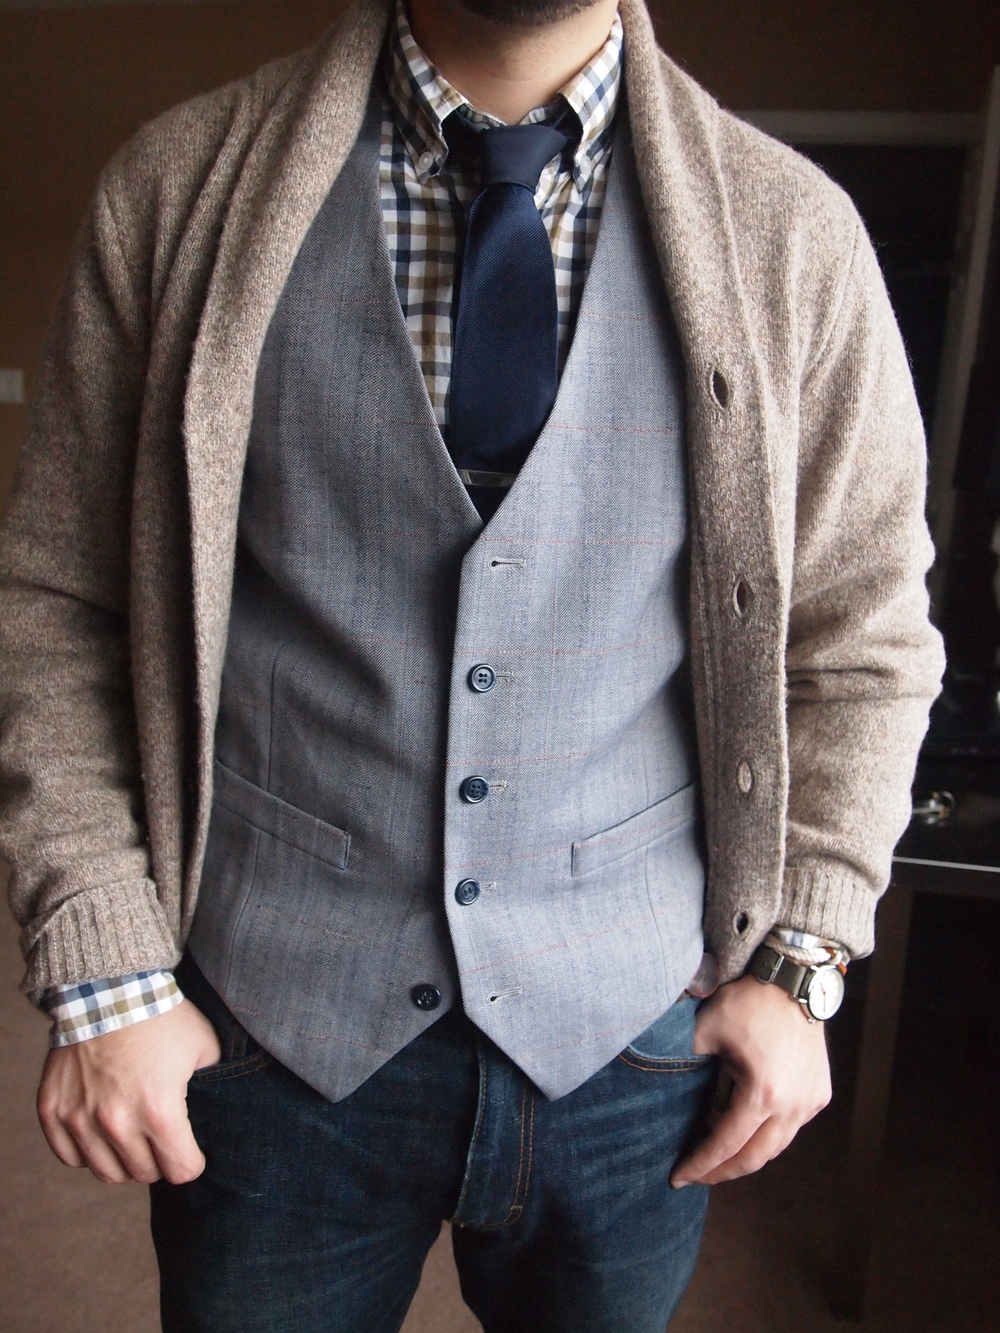 (from:dressedtoill.com)